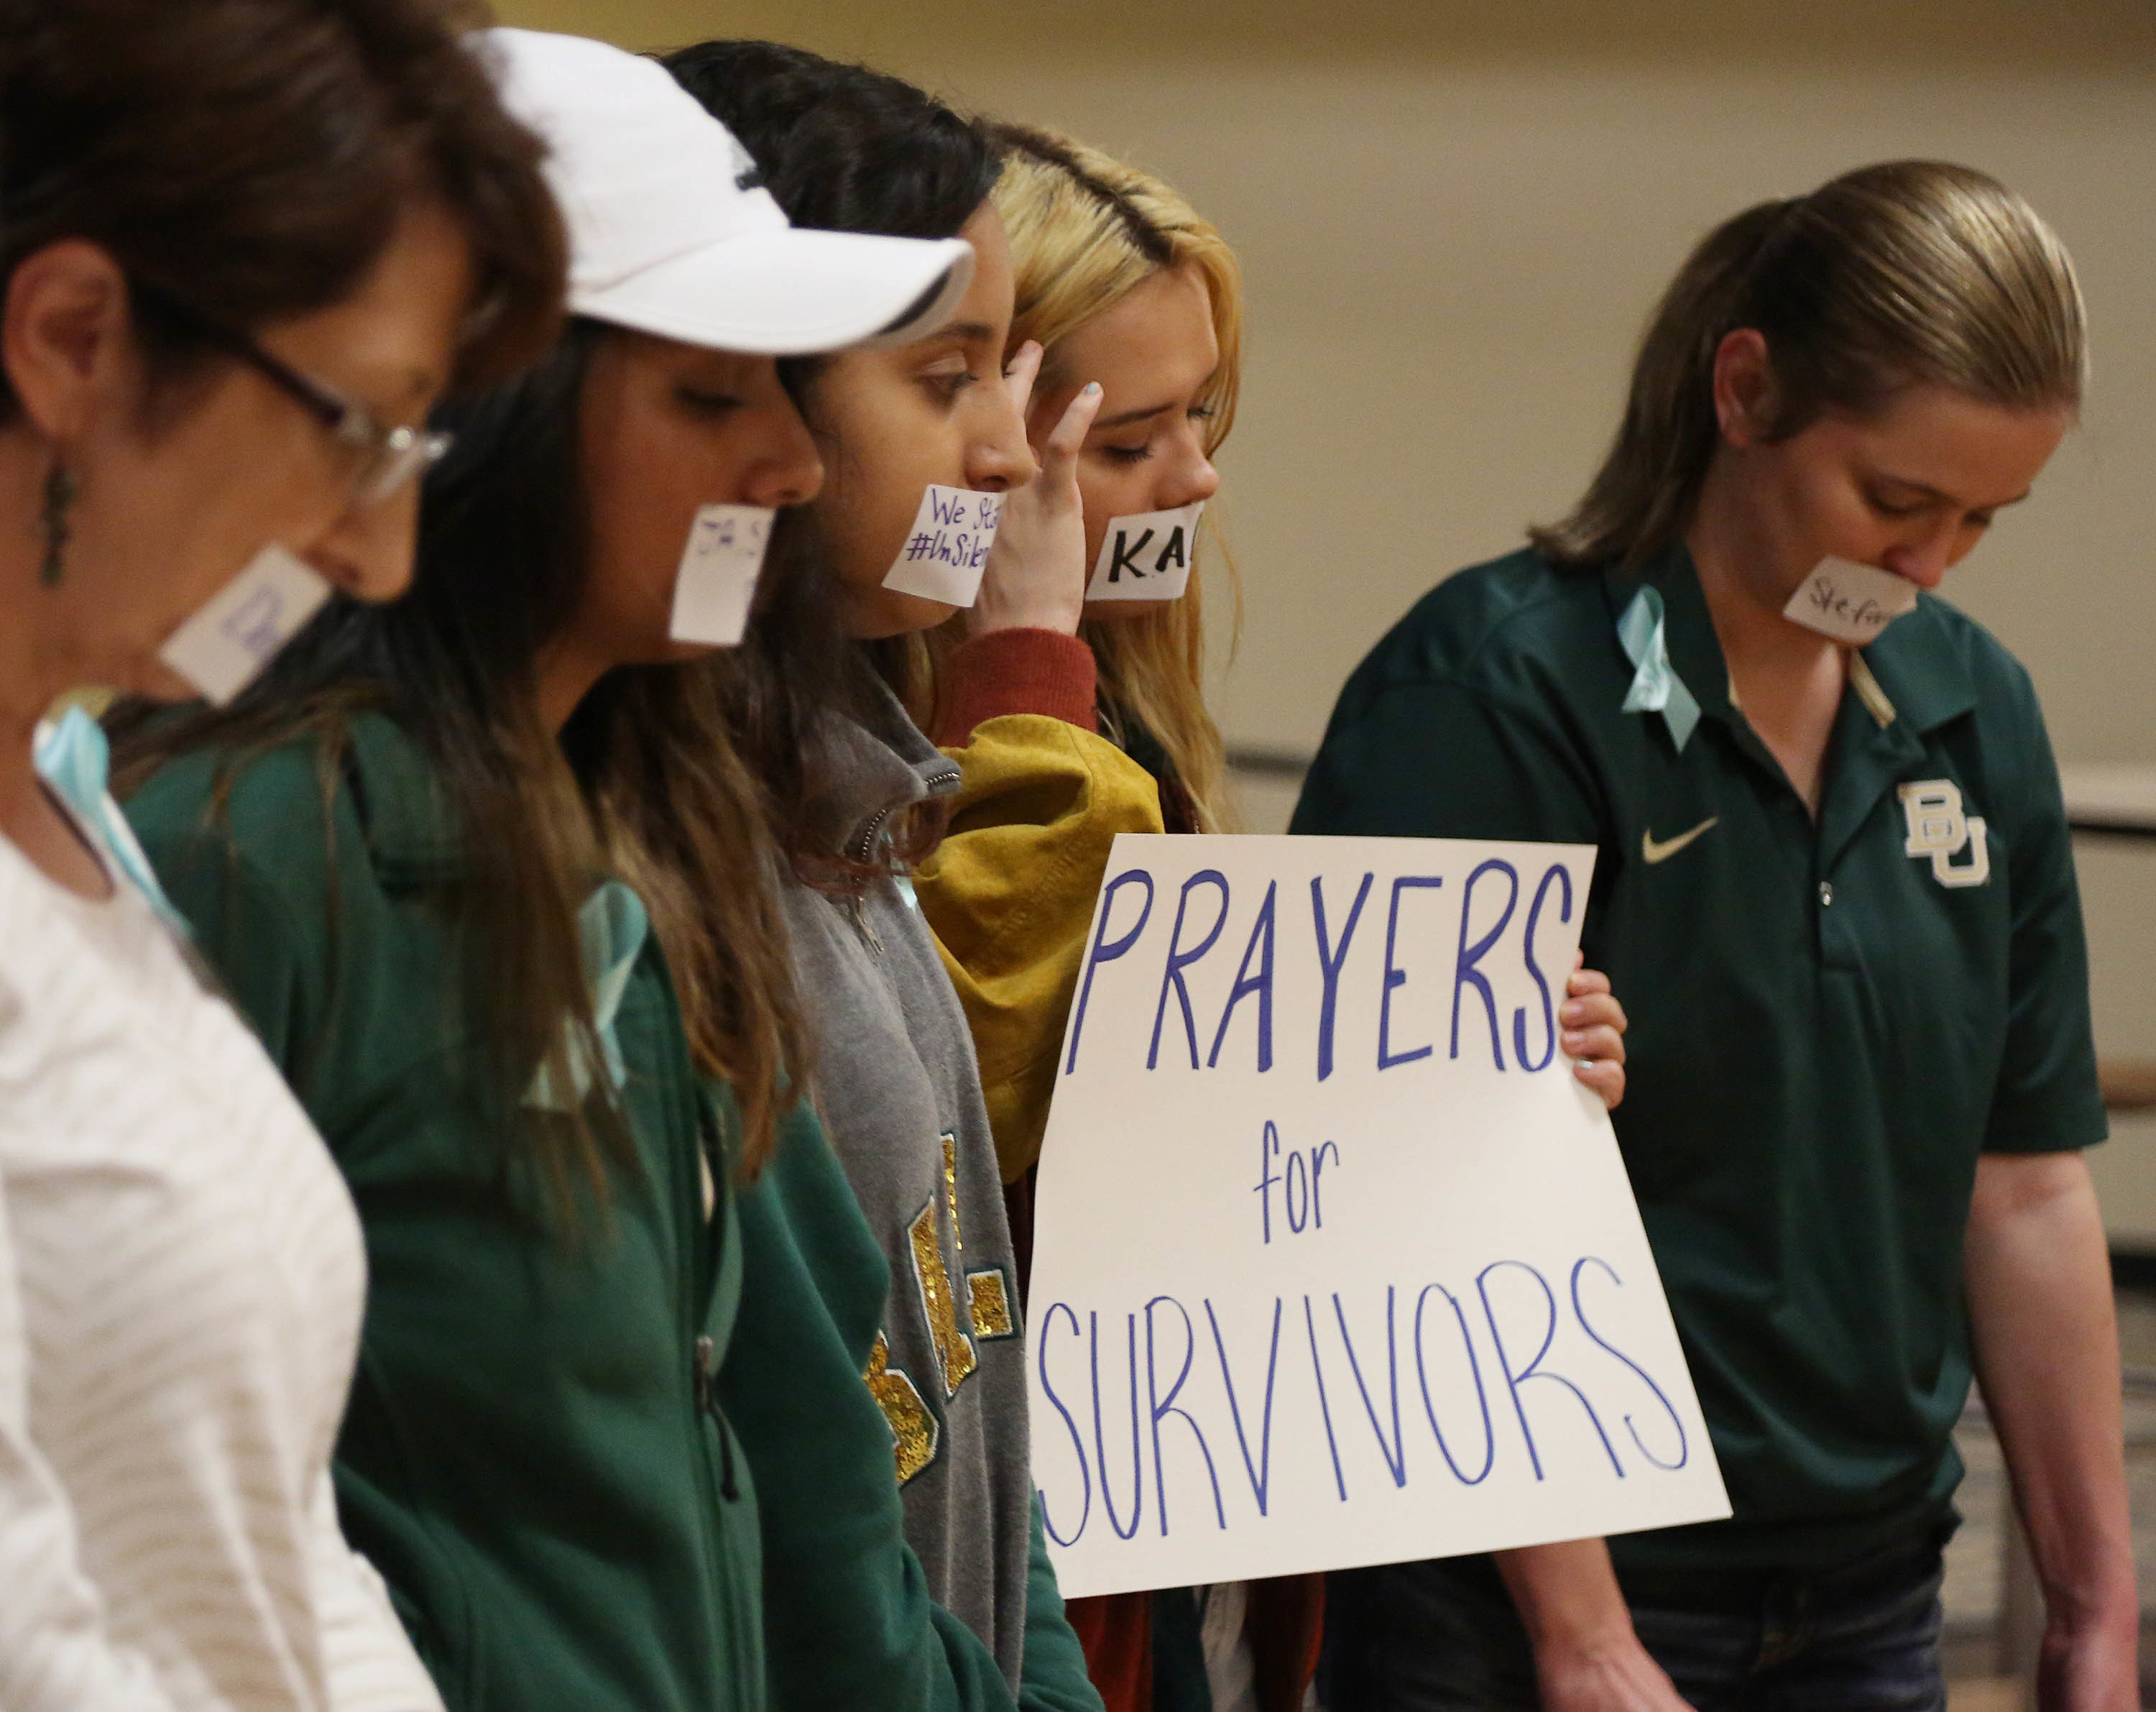 Universities Caught Up In Recent Sexual Assault Scandals Using Same Playbook That Baylor Did In 2015